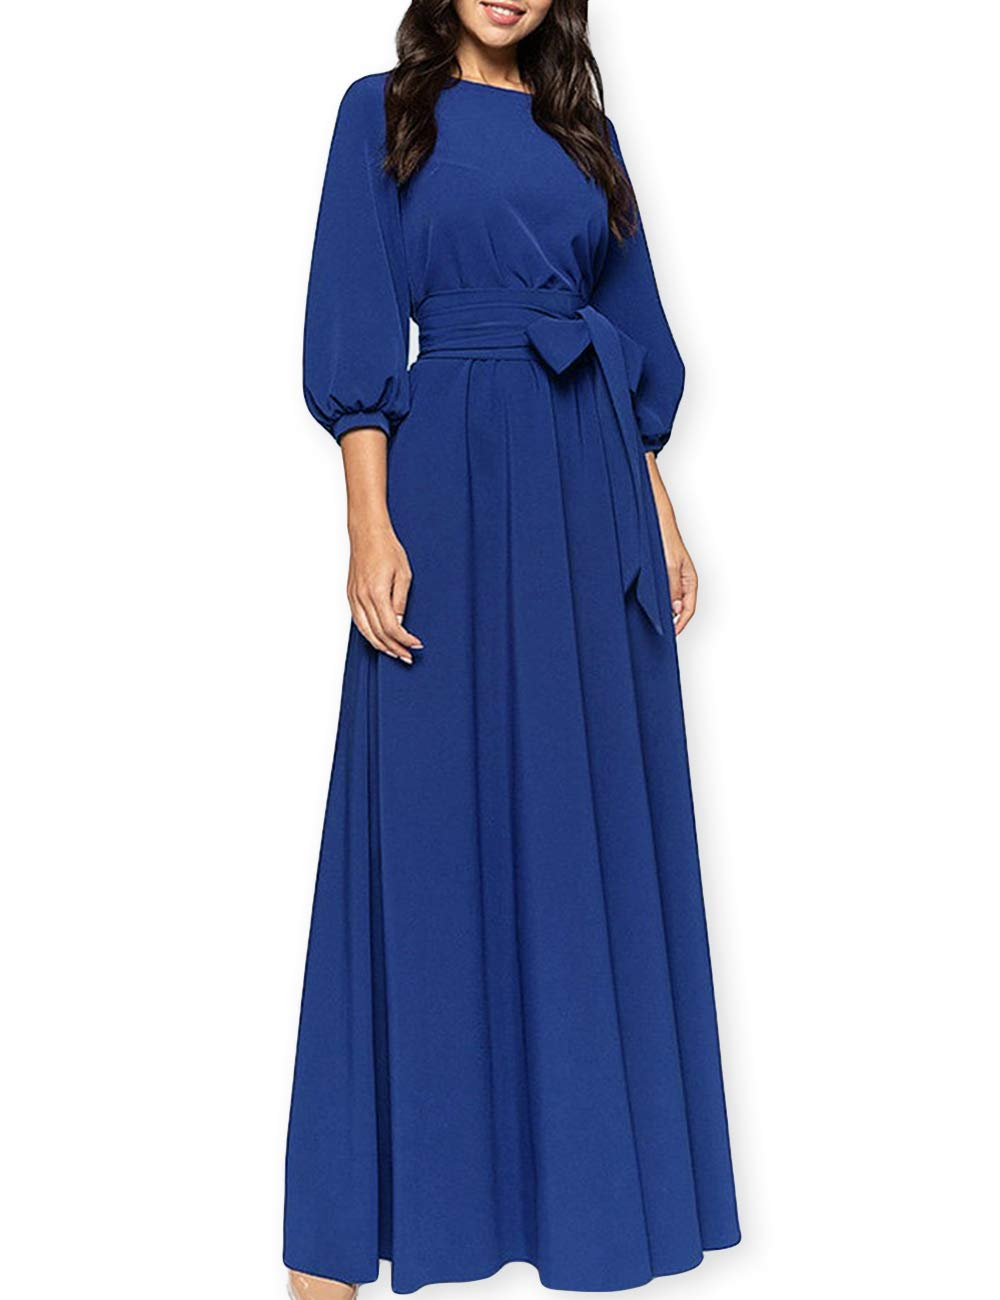 Available at Amazon: AOOKSMERY Women Elegance Audrey Hepburn Style Round Neck 3/4 Puff Sleeve Puffy Swing Maxi Dress with Belt